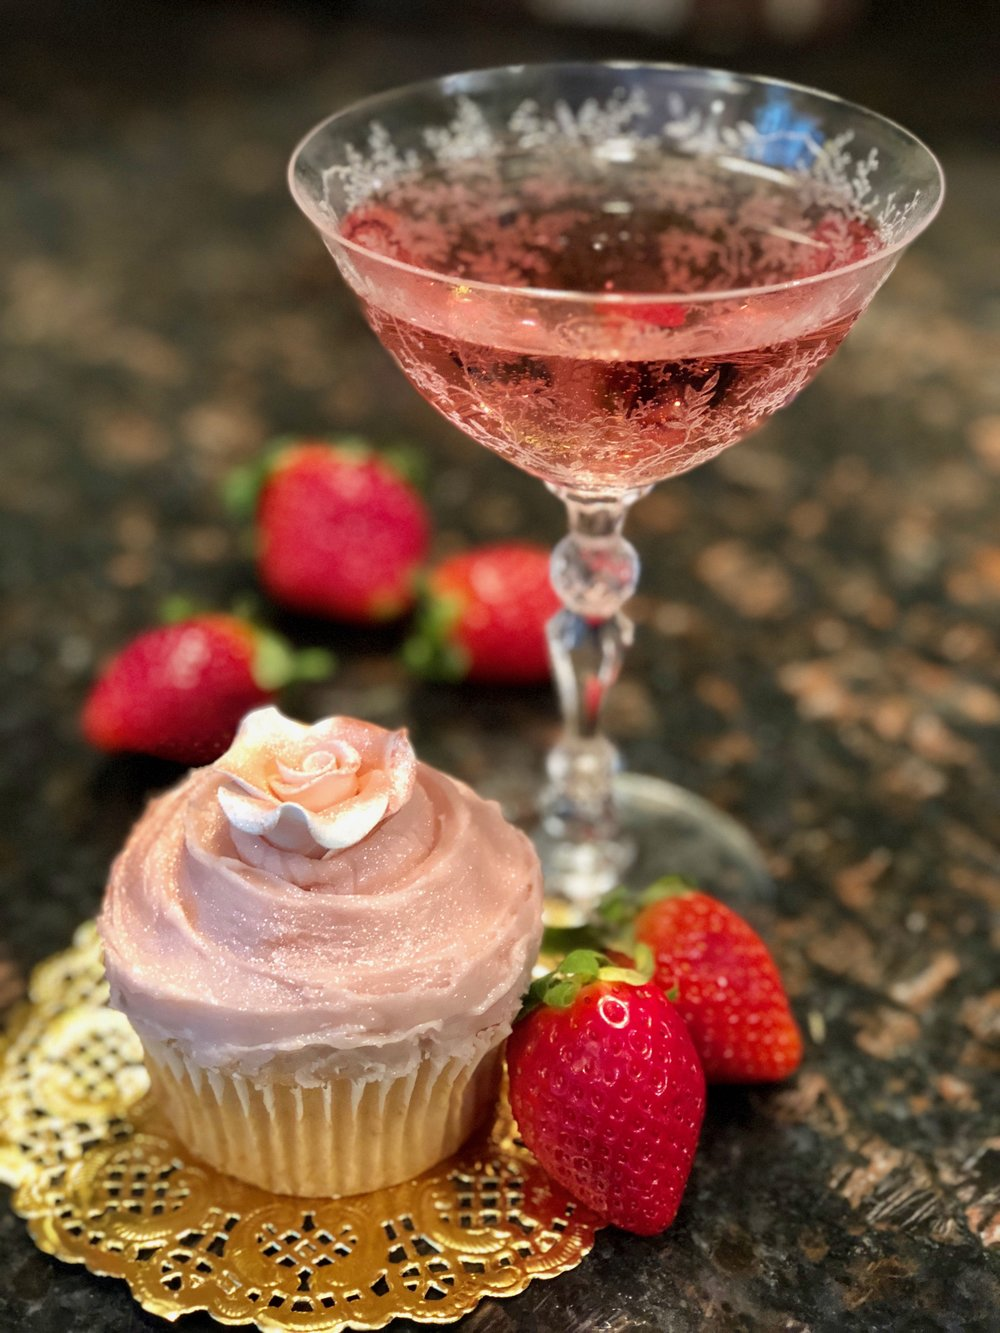 Champagne cupcake recipe and pink Champagne .jpg